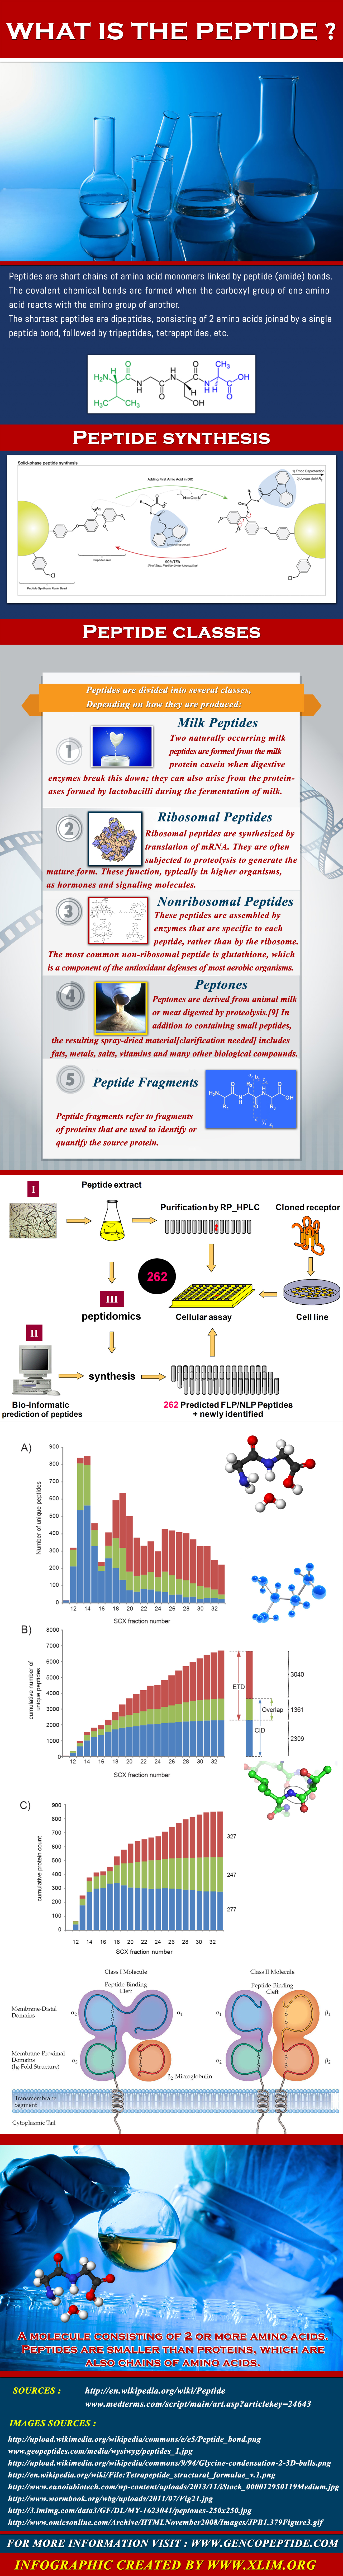 What is peptide_GENCO PEPTIDES